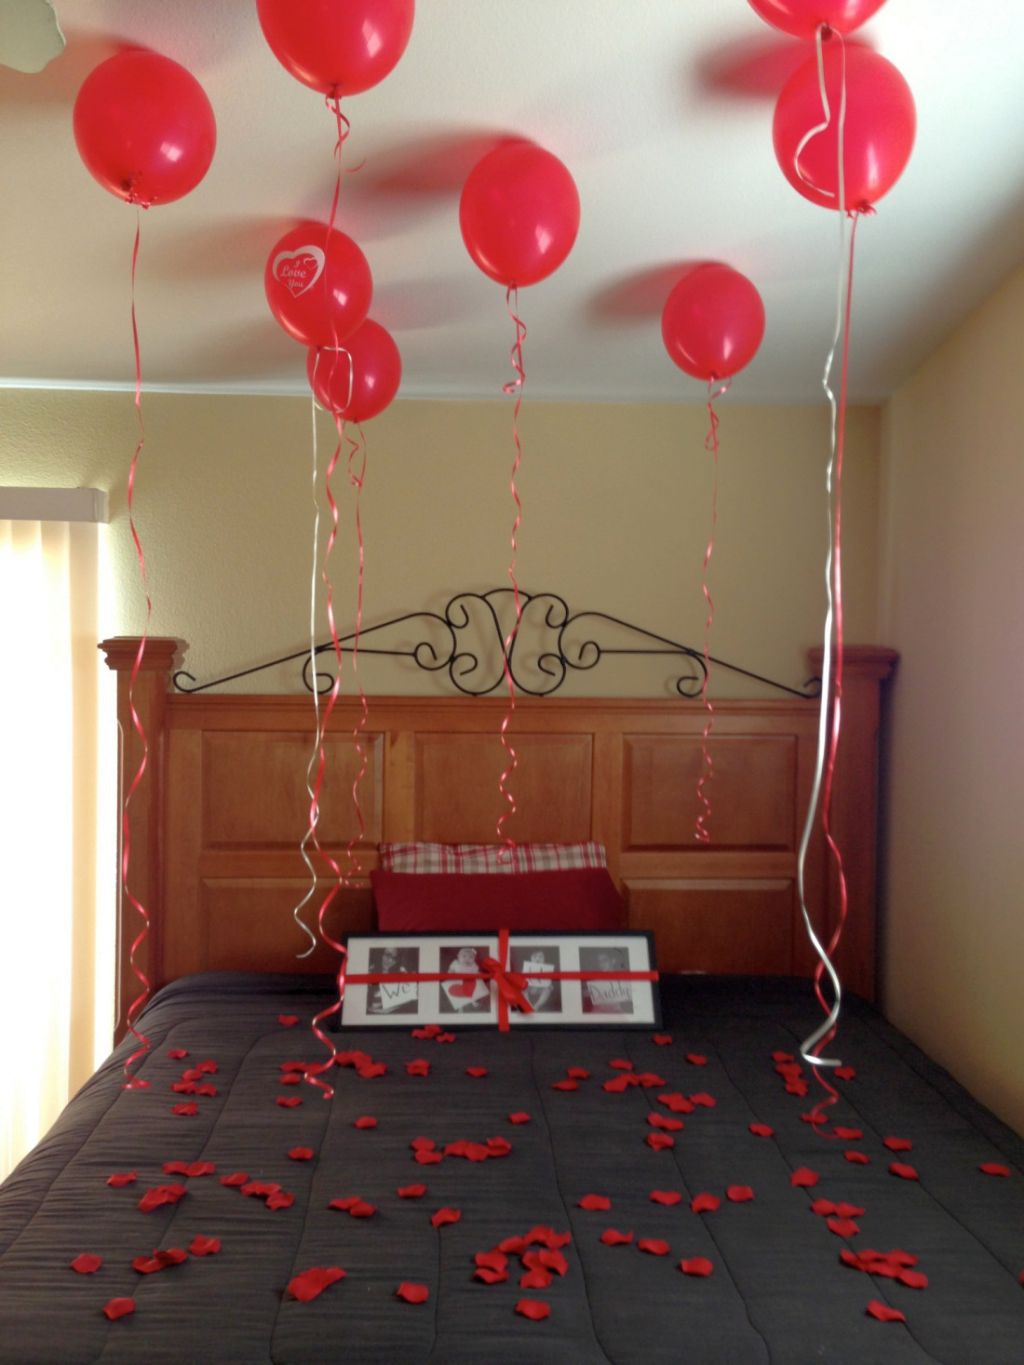 How to decorate home for valentine 39 s day interior for Bed decoration with balloons